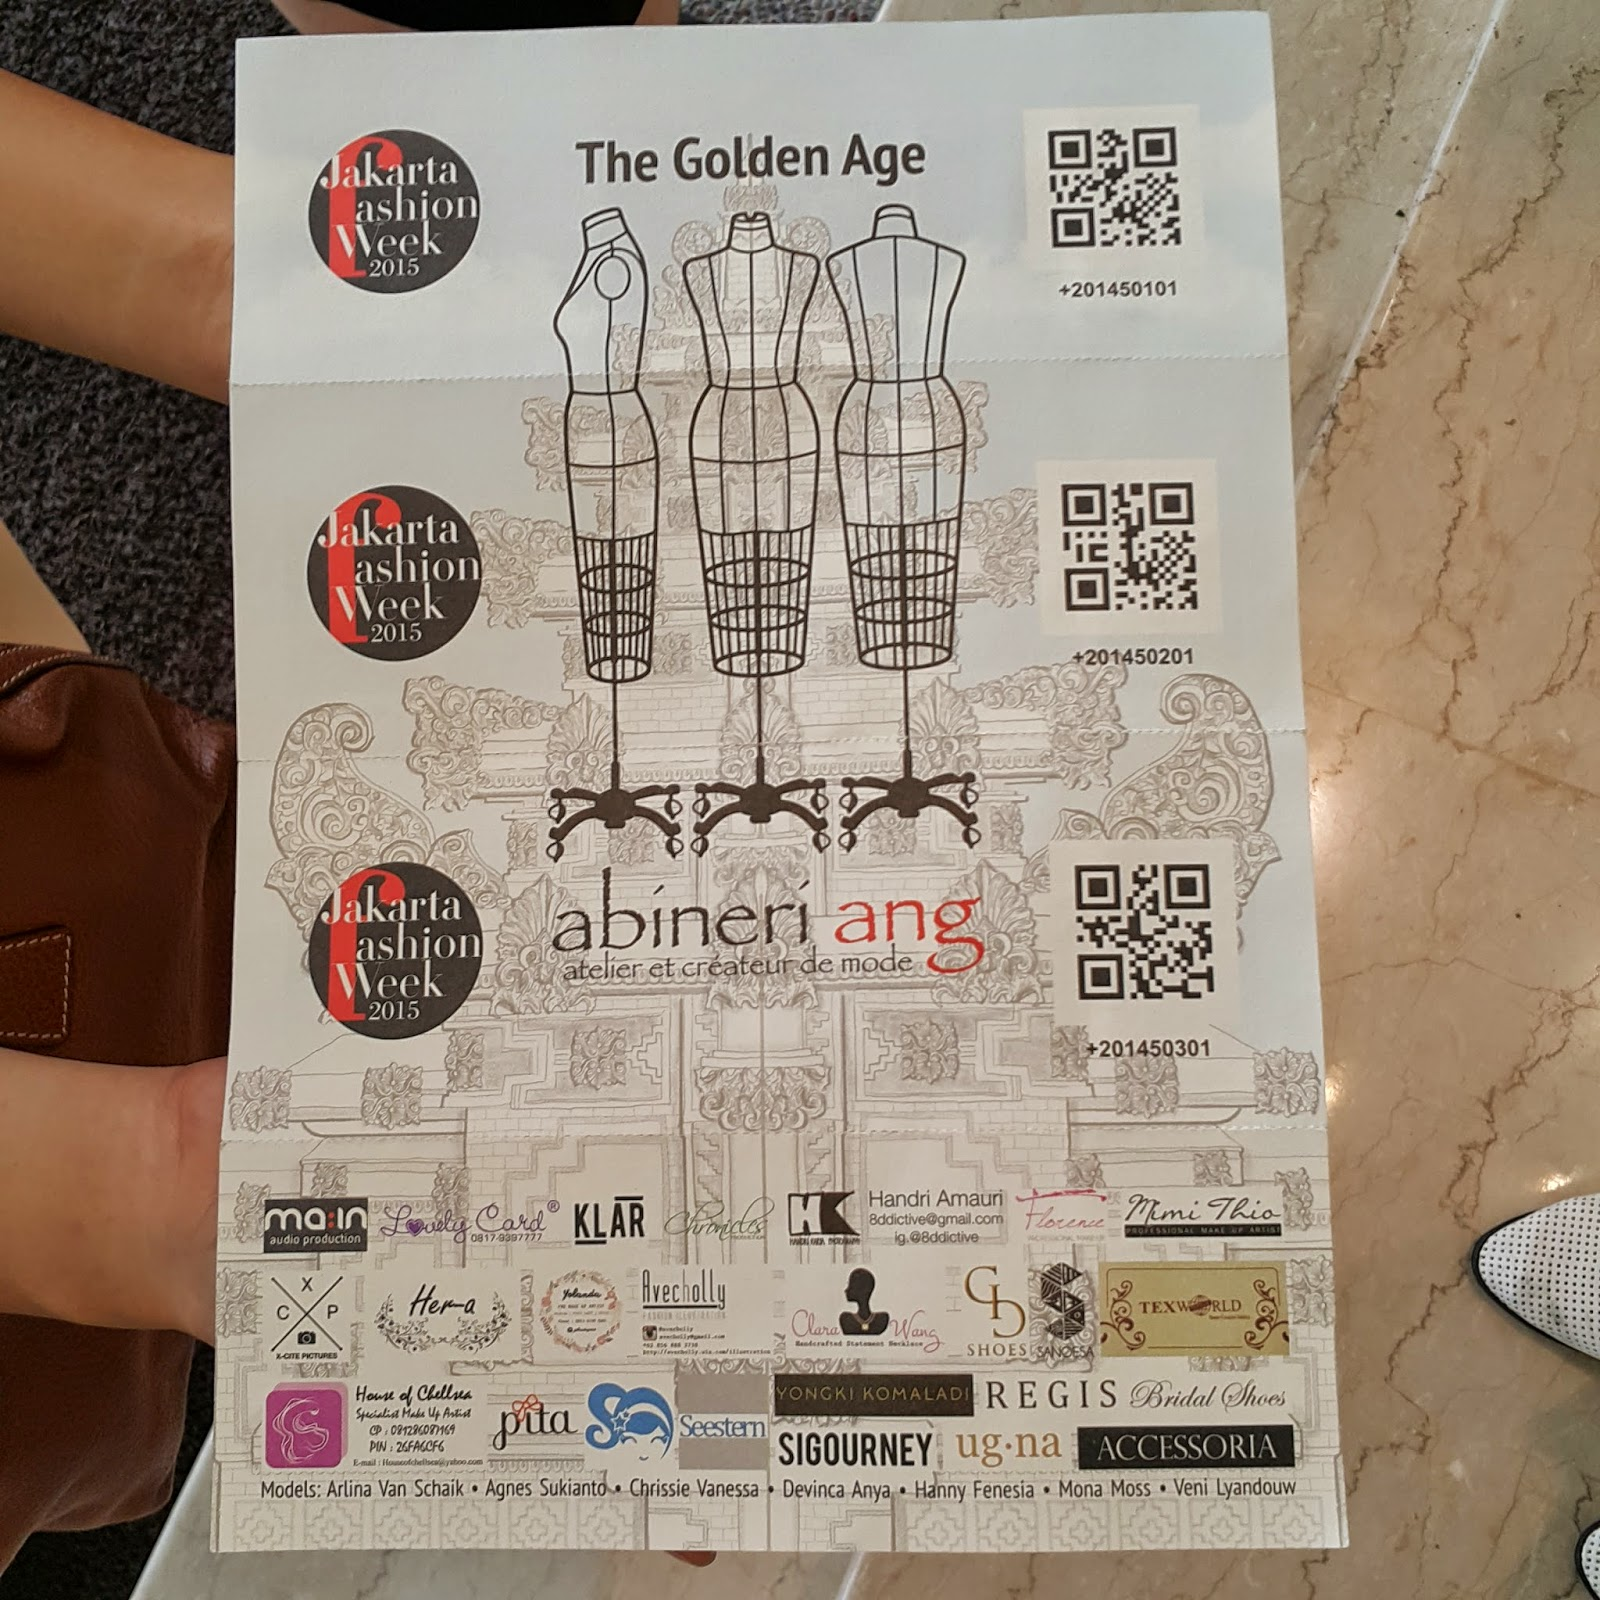 Behind the fabriannes jakarta fashion week 2015 this is the invitation stopboris Images